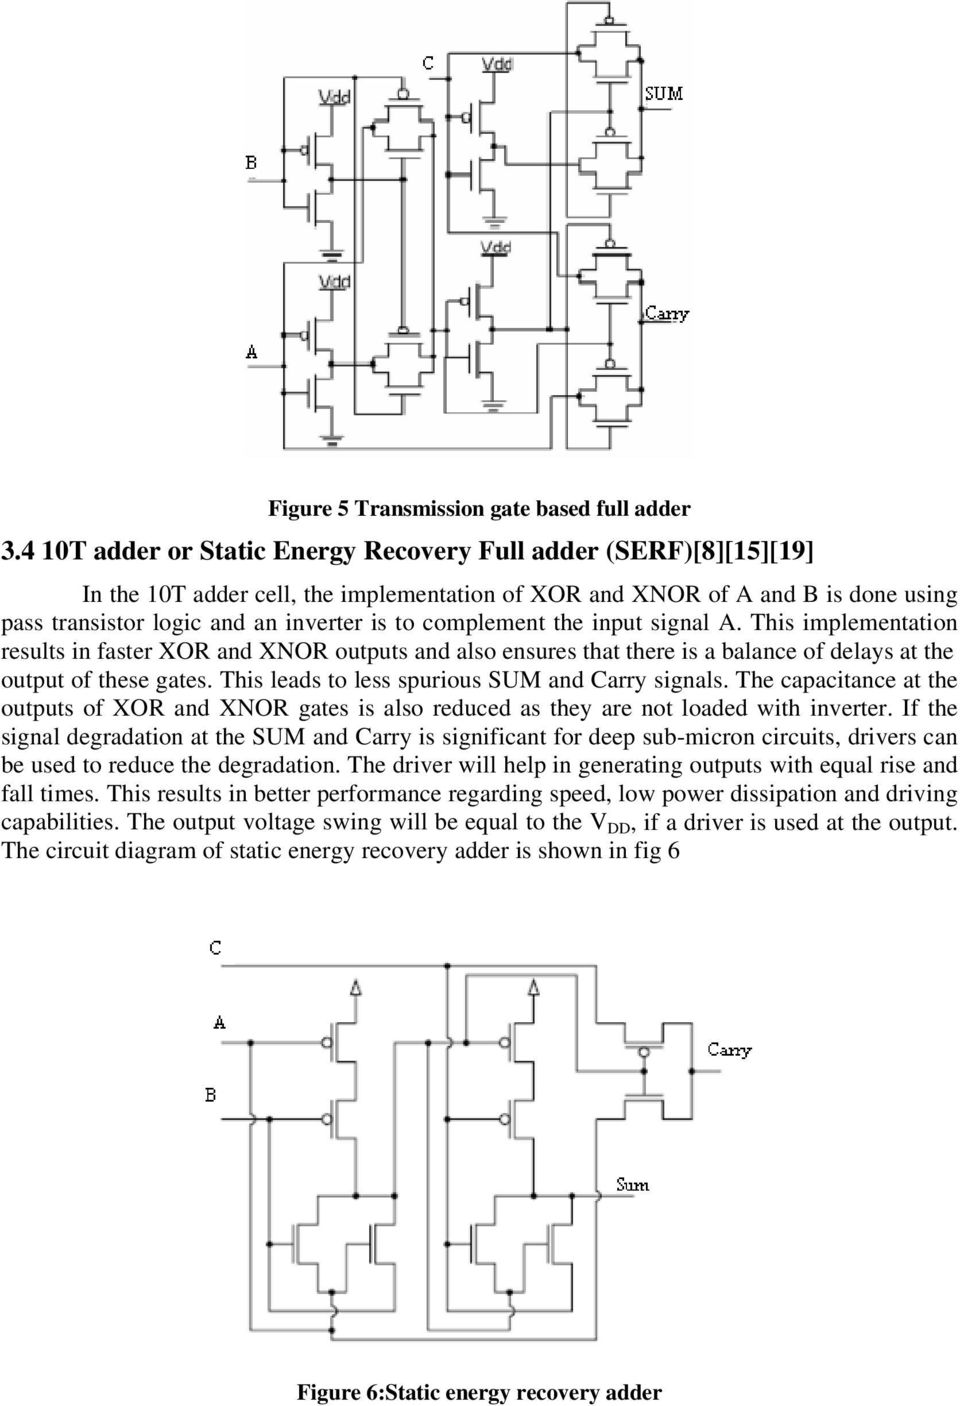 Power Comparison Of Cmos And Adiabatic Full Adder Circuits Pdf Diagram In Addition Logic On Nand Inverter Circuit Complement The Input Signal A This Implementation Results Faster Xor Xnor Outputs